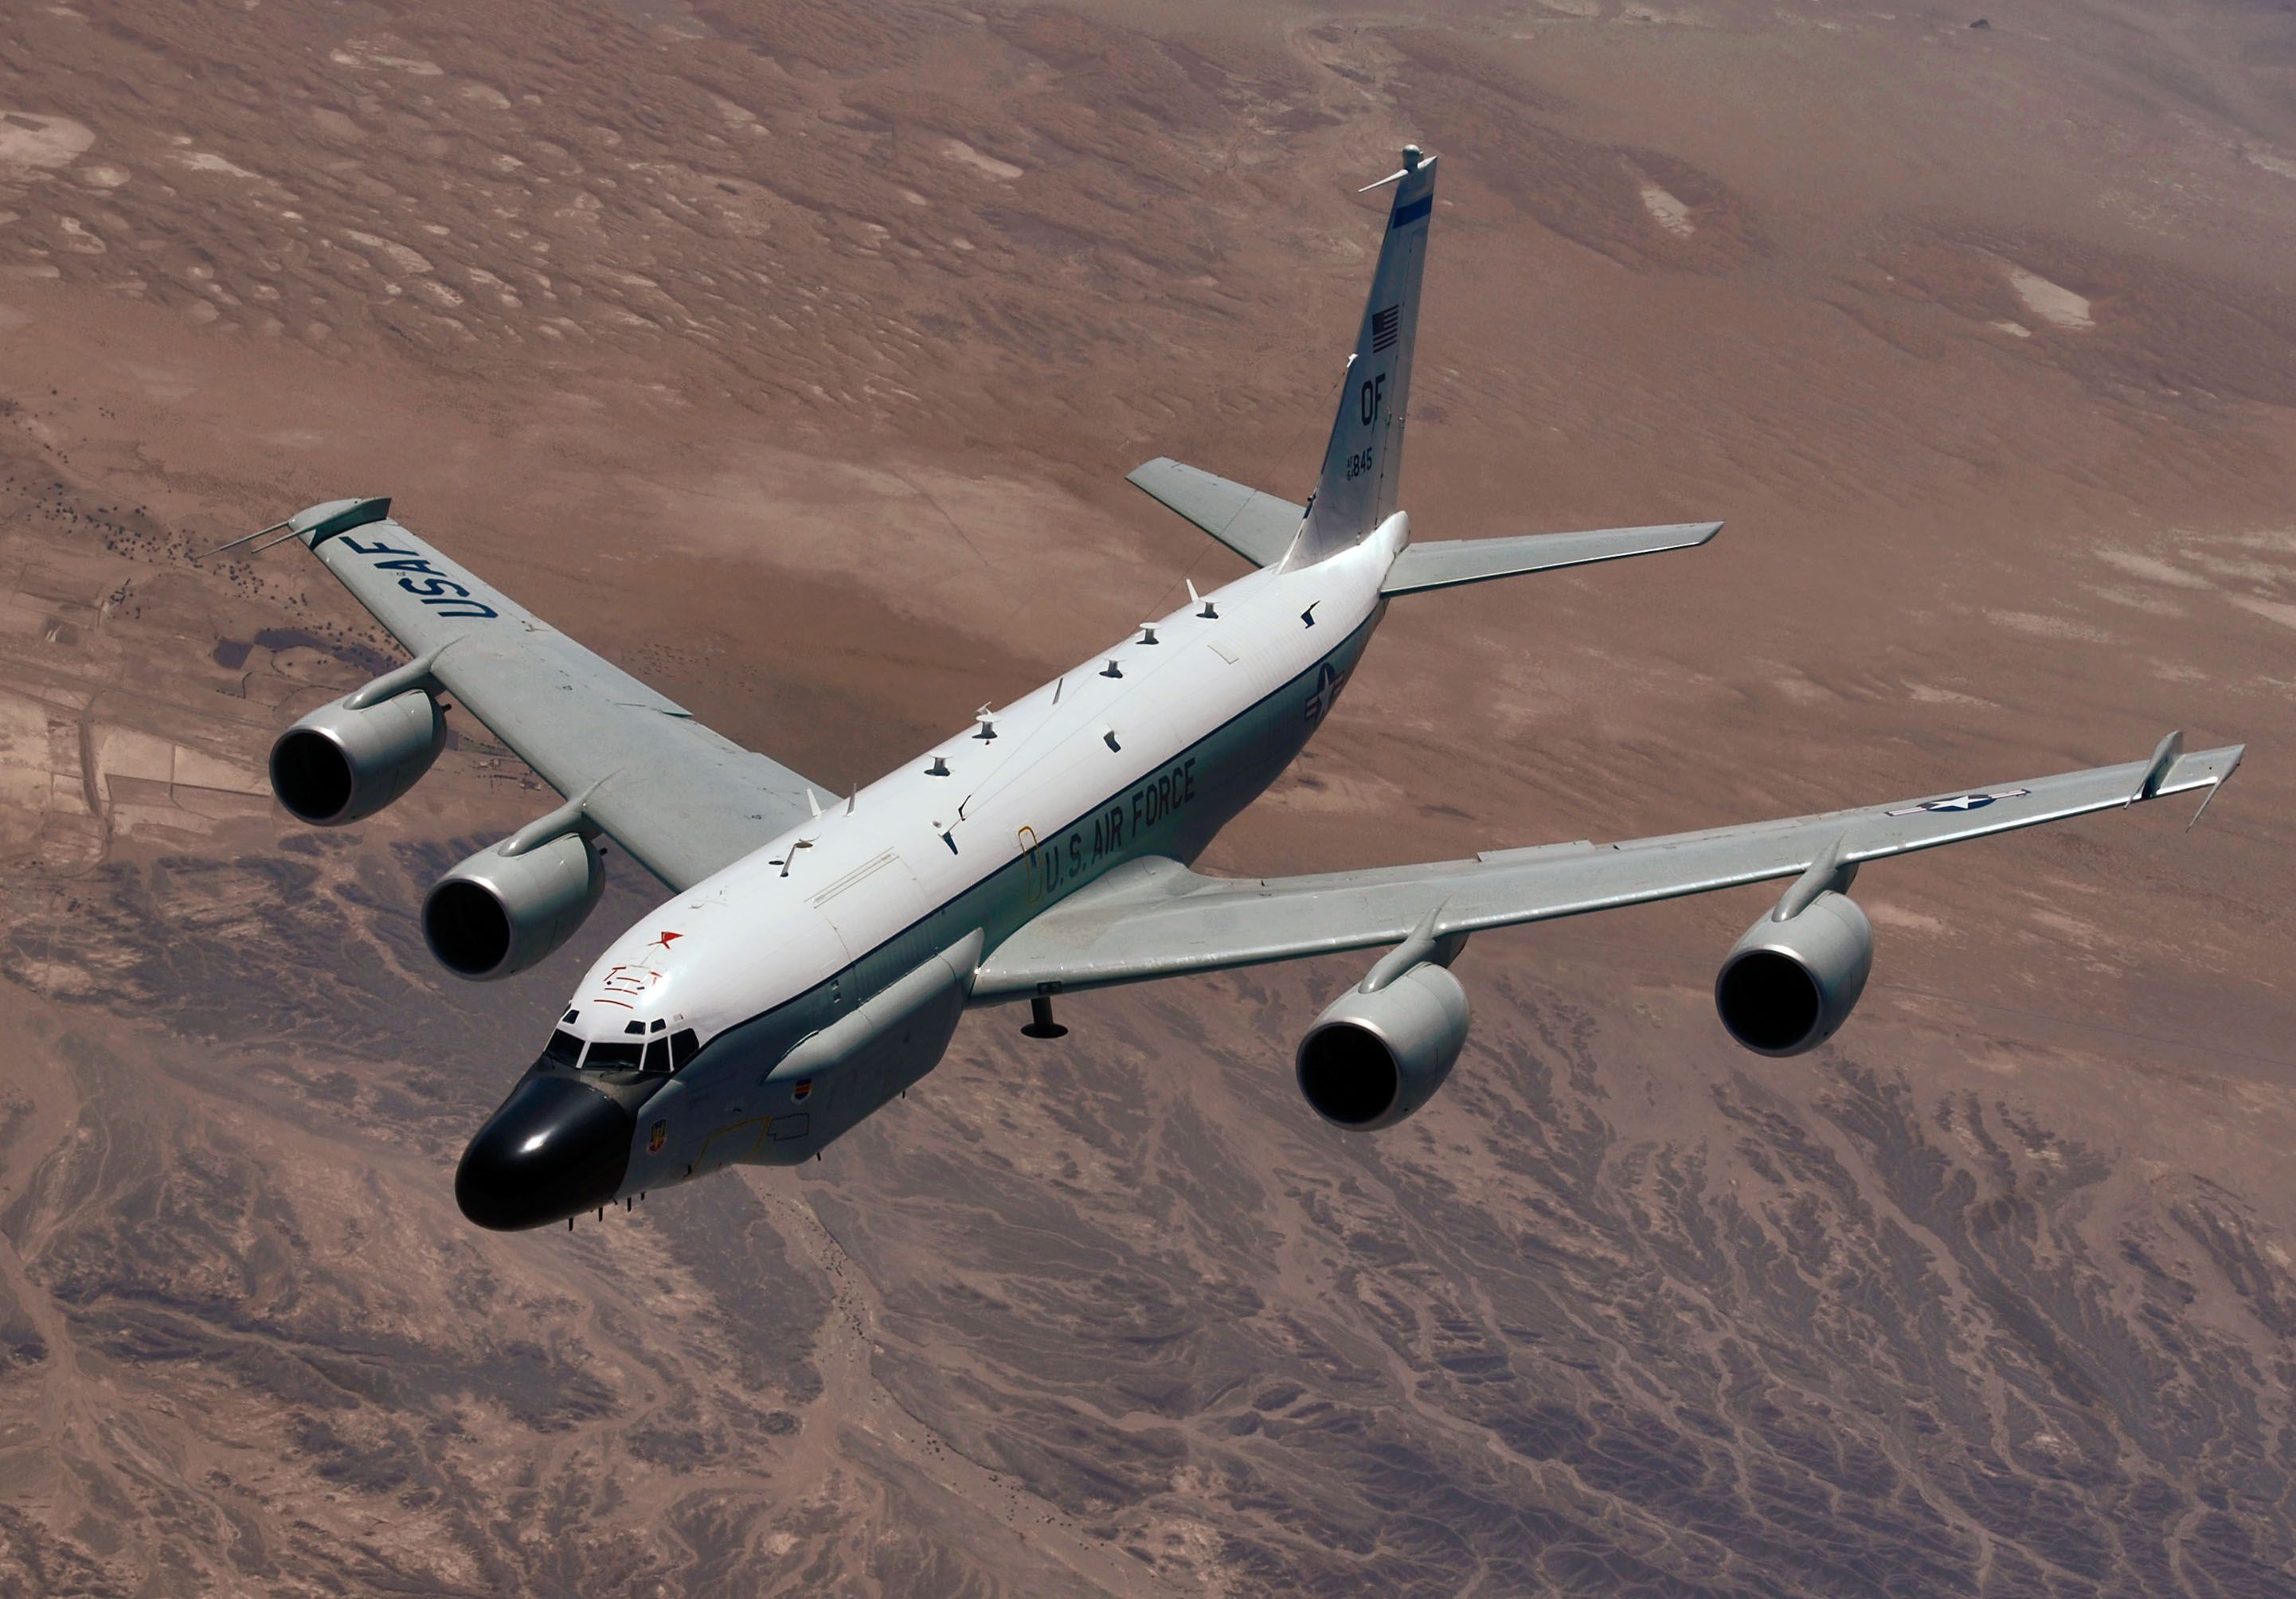 Rc 135 My Brother S Plane Us Military Aircraft Spy Plane Reconnaissance Aircraft